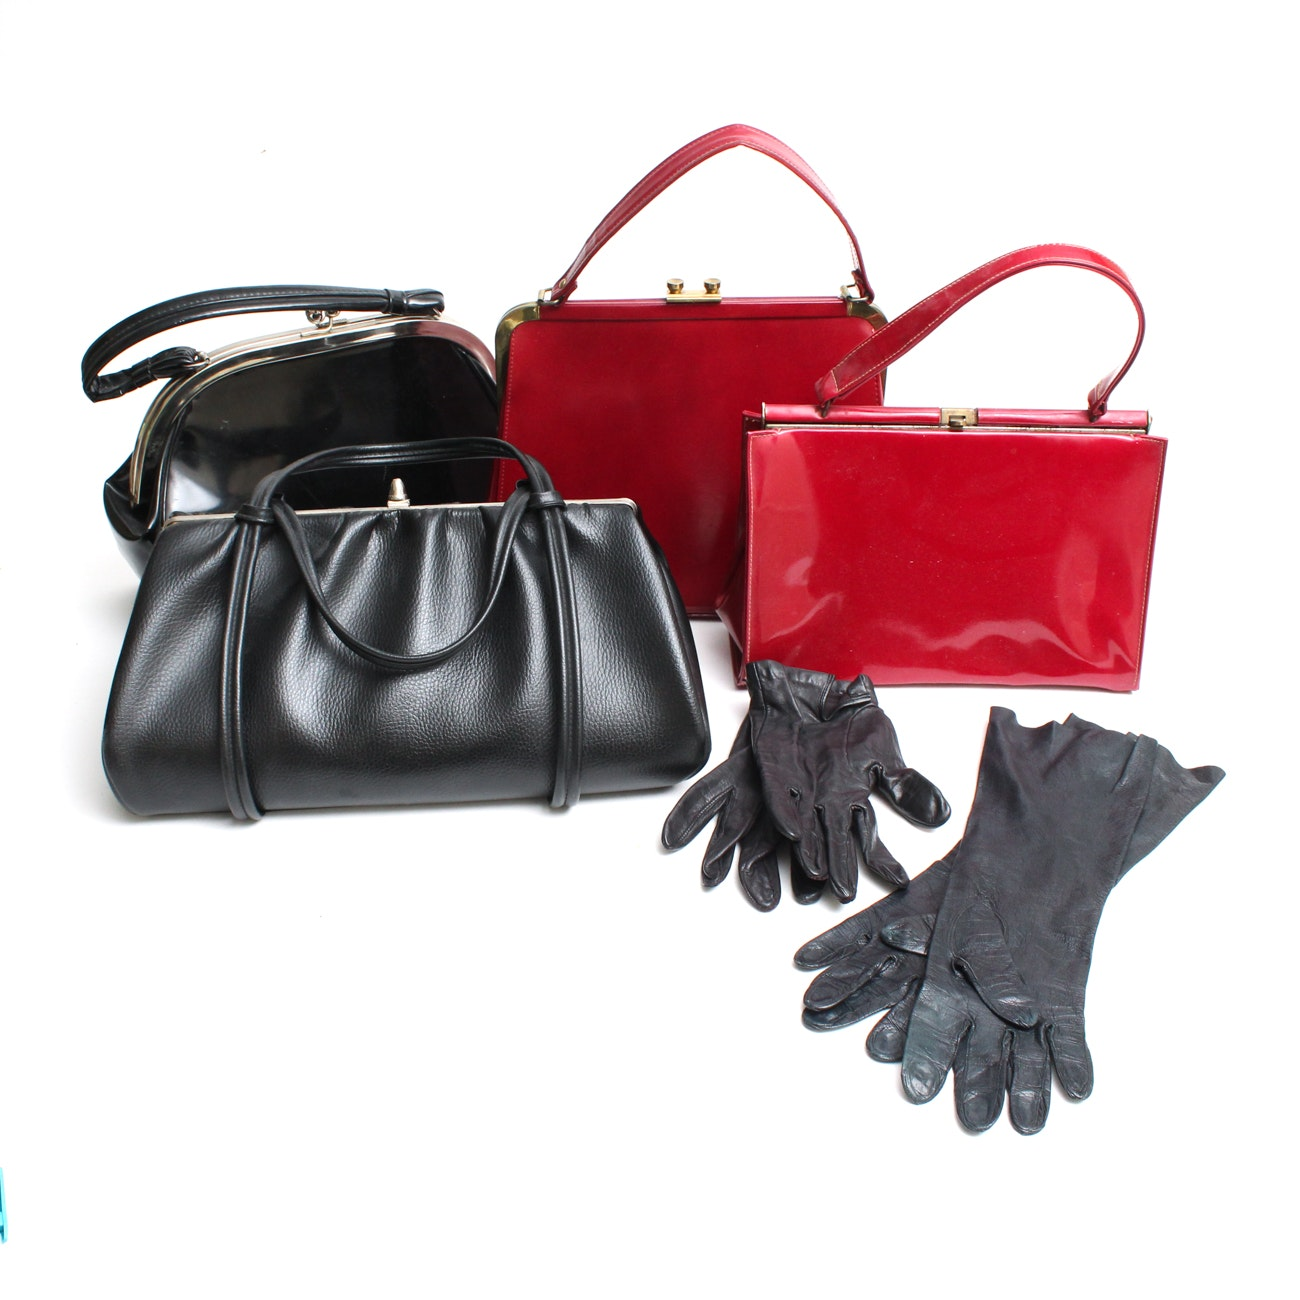 Circa 1950s-1960s Vintage Frame Handbags and Leather Gloves